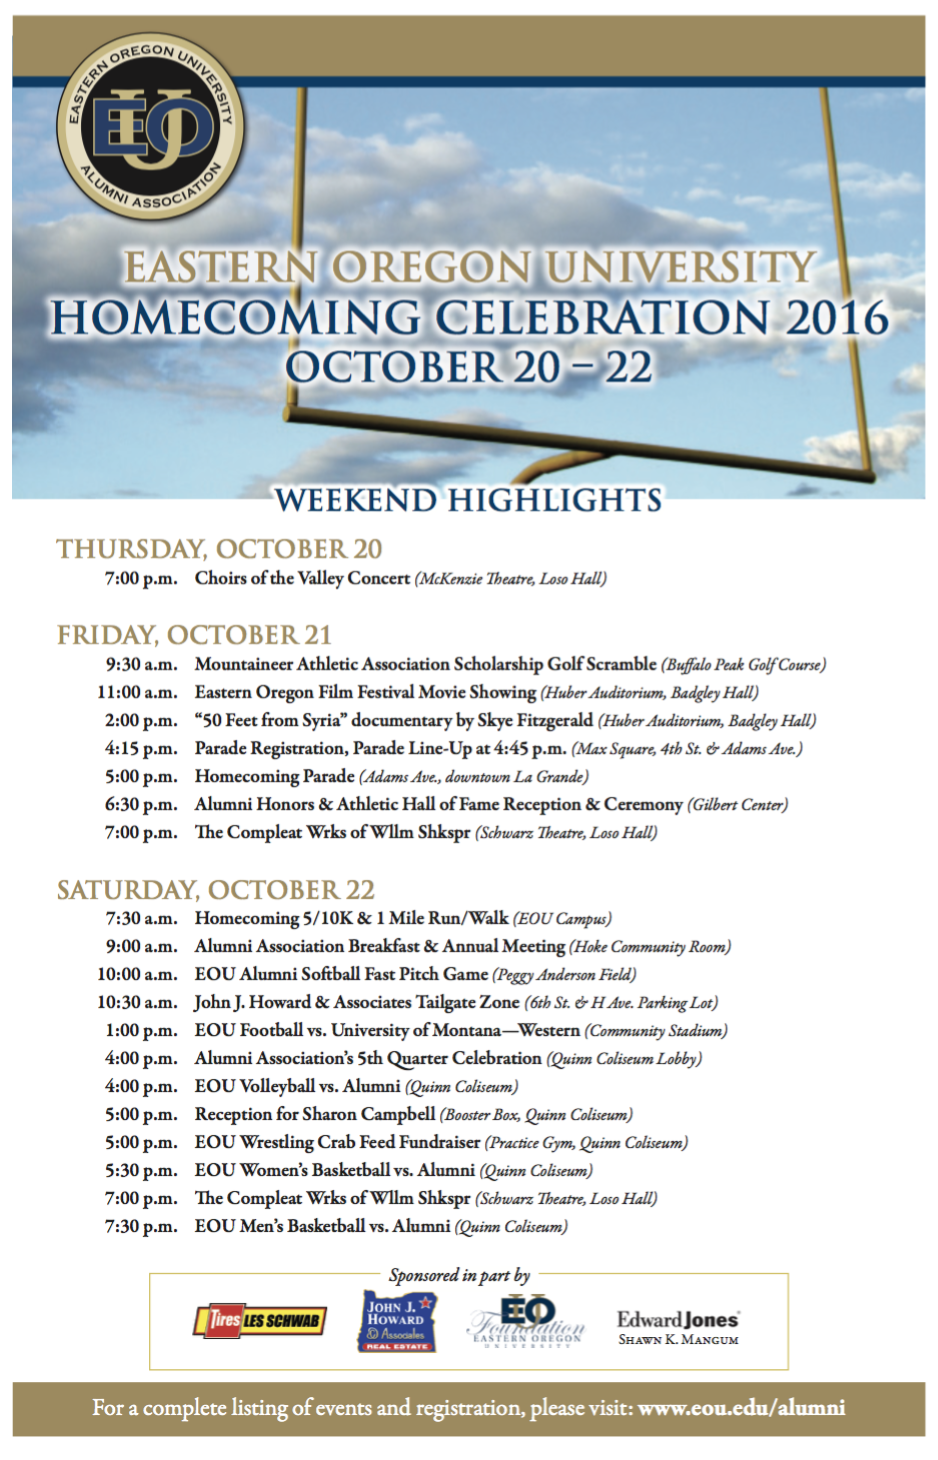 EOU Homecoming 2016 Schedule